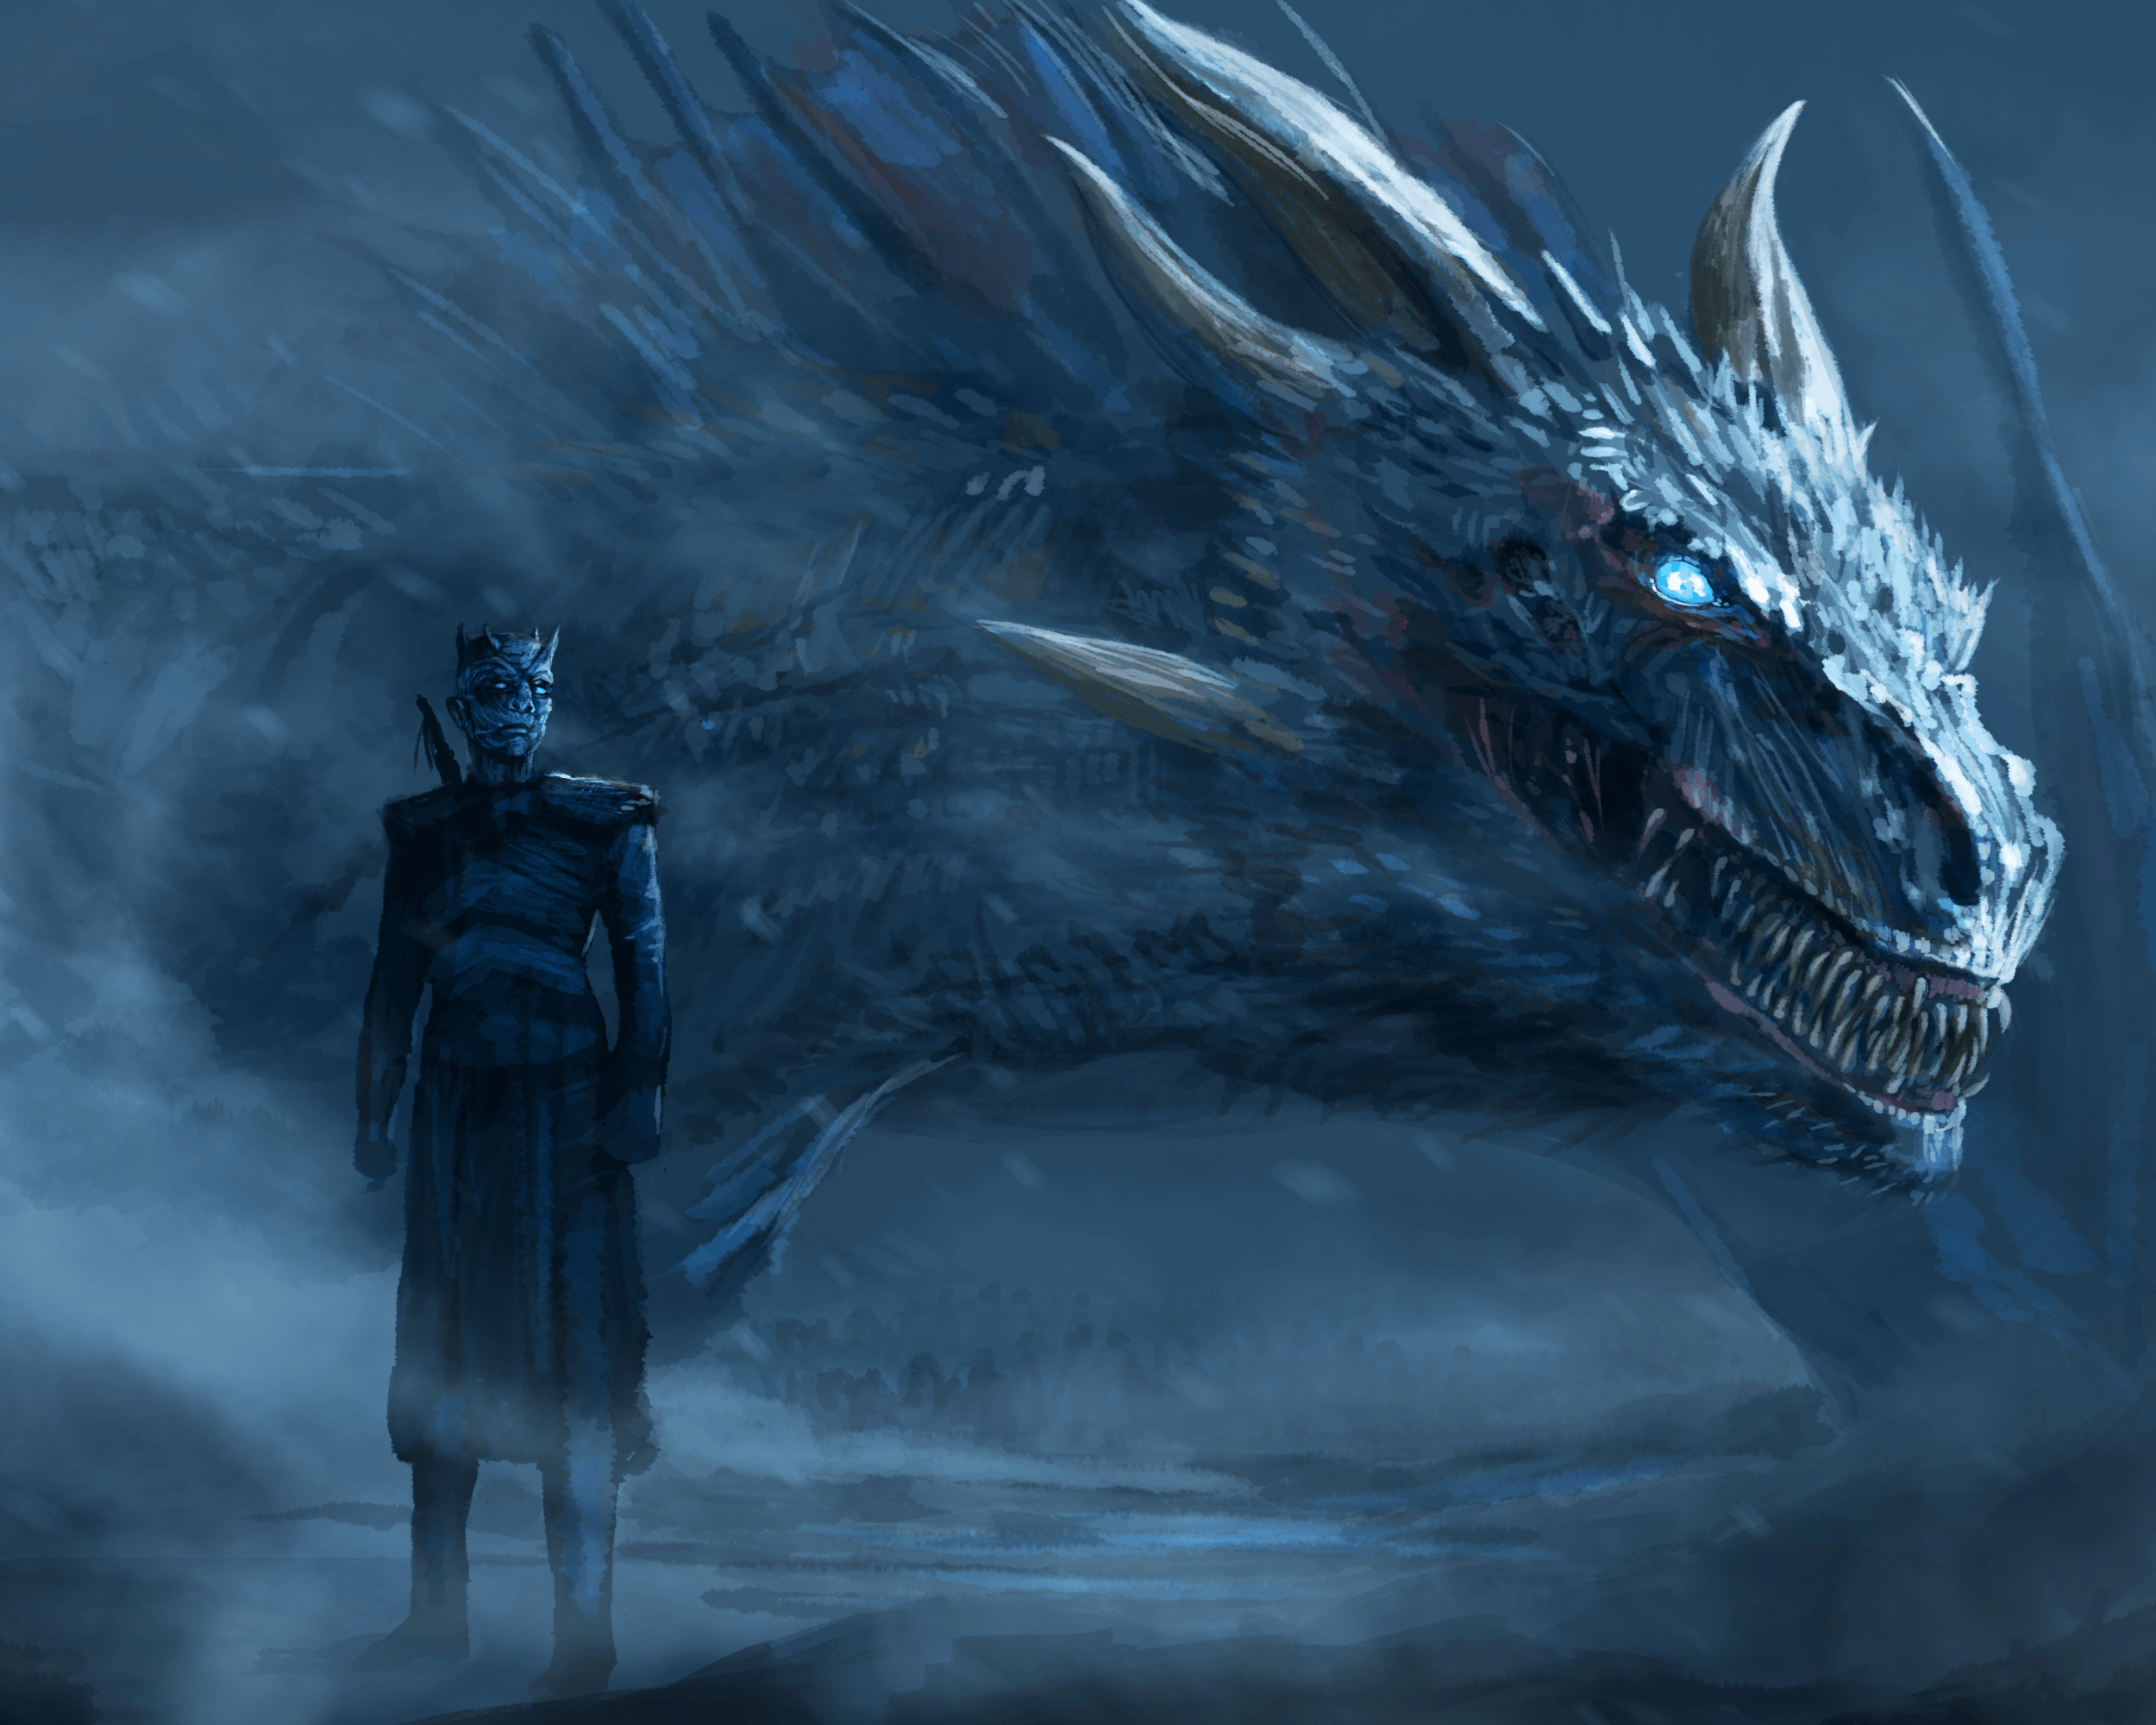 Ice Dragon Game Of Thrones Wallpapers Top Free Ice Dragon Game Of